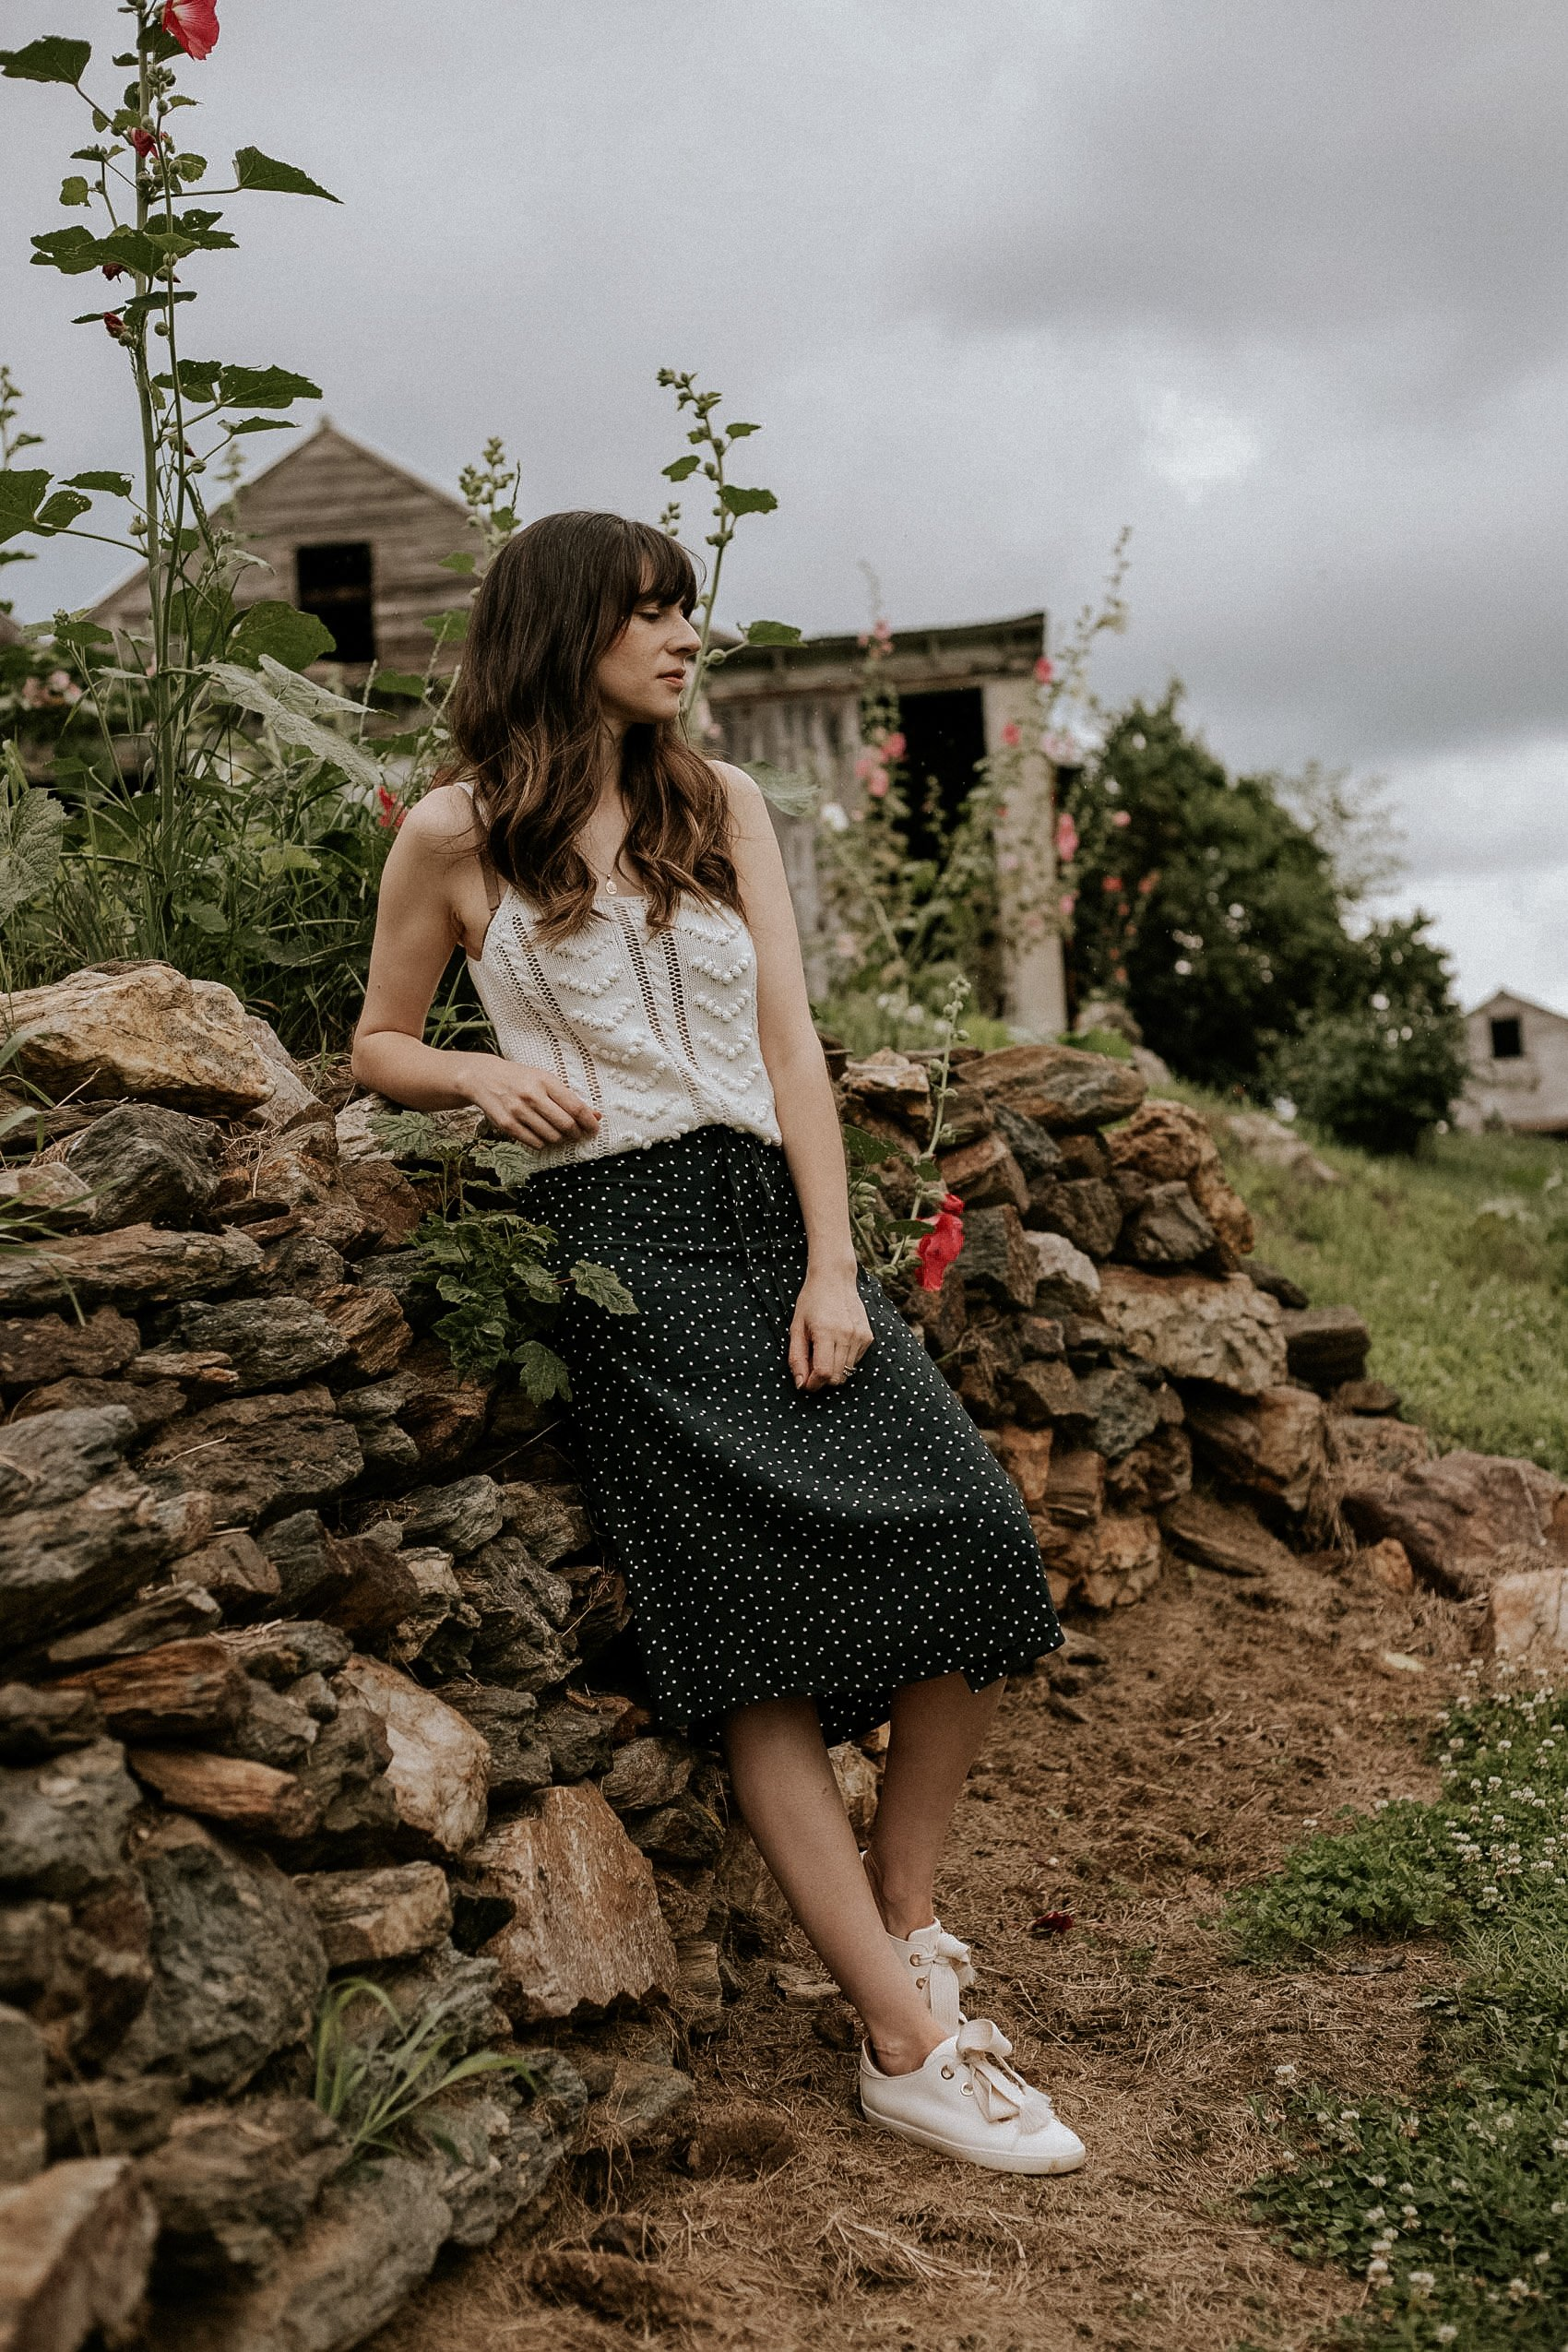 Sézane Jack Sneakers with polka dot midi skirt and textured knit tank on woman leaning on a stone wall